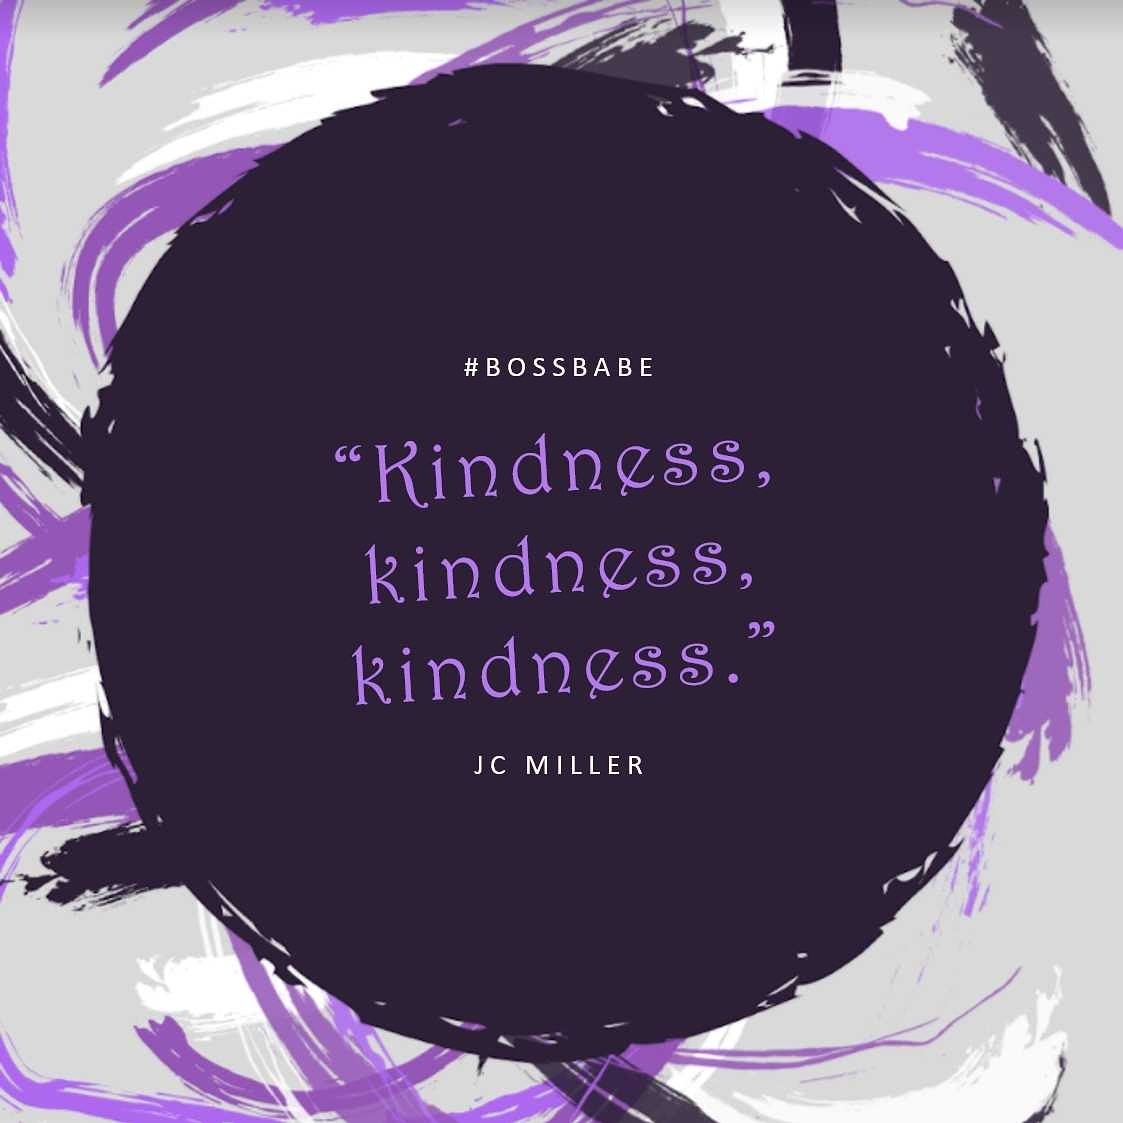 """Good morning beautiful people.  """"Kindness is the language which the deaf can hear and the blind can see."""" -Mark Twain  #TuesdayTransformation #authorJCMiller #JessMoBooks #beingboss #bossbabe #prayerfulwives"""